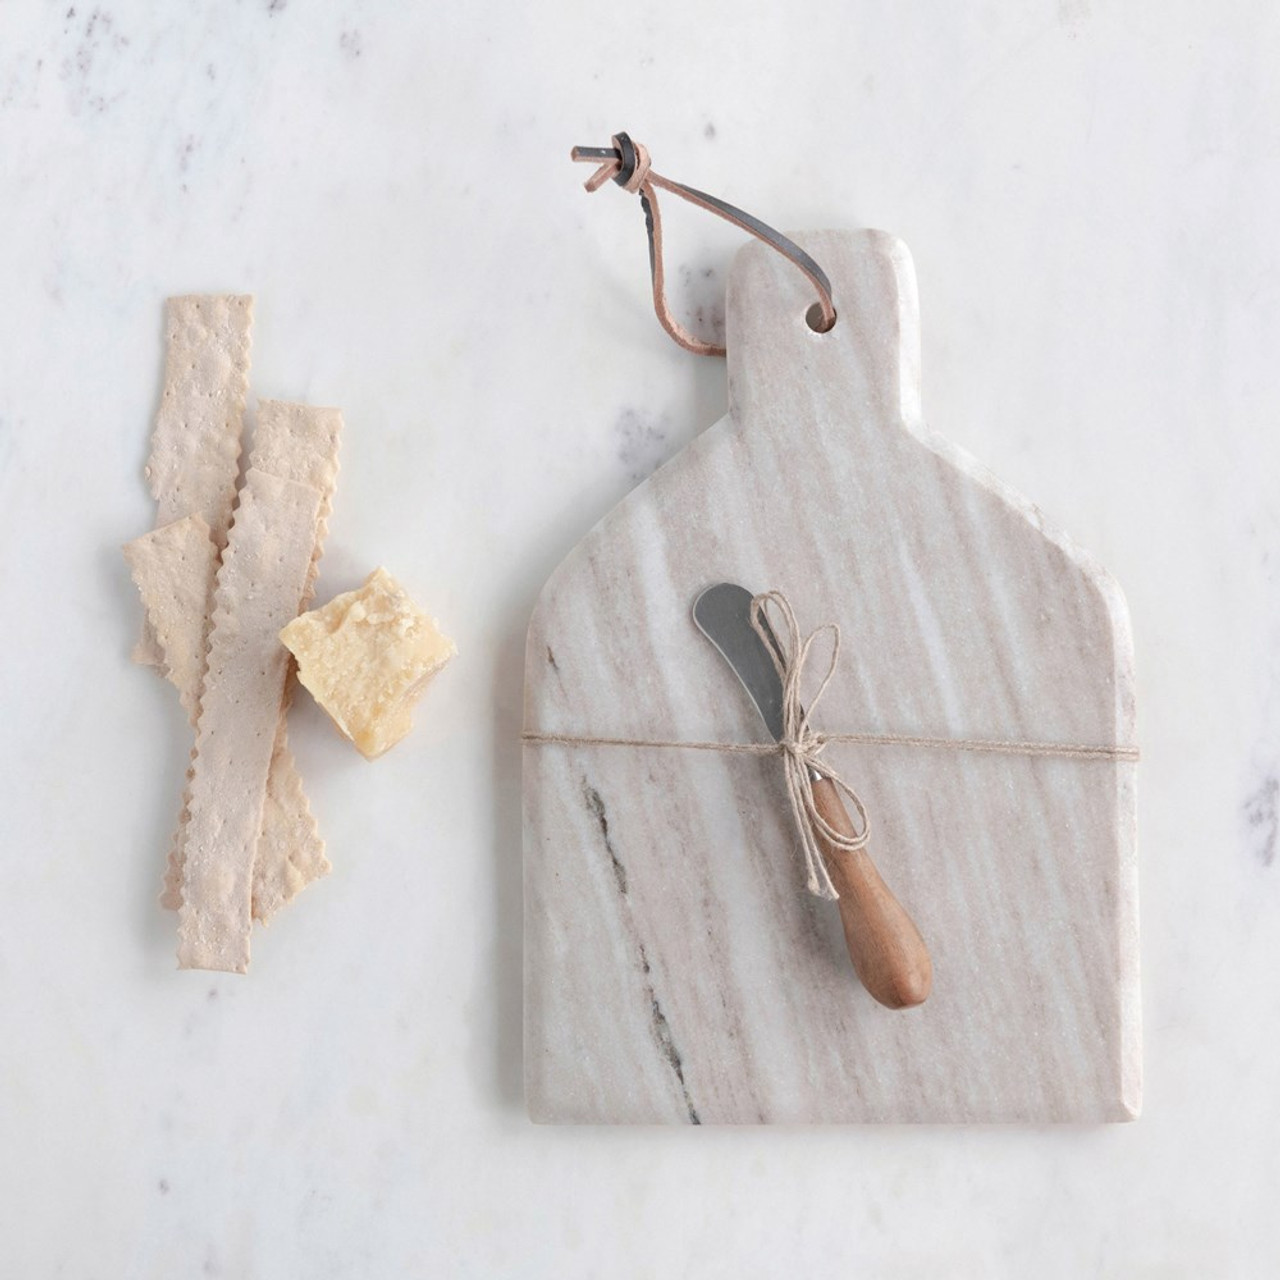 Marble Cheese Cutting Board w/ Canape Knife